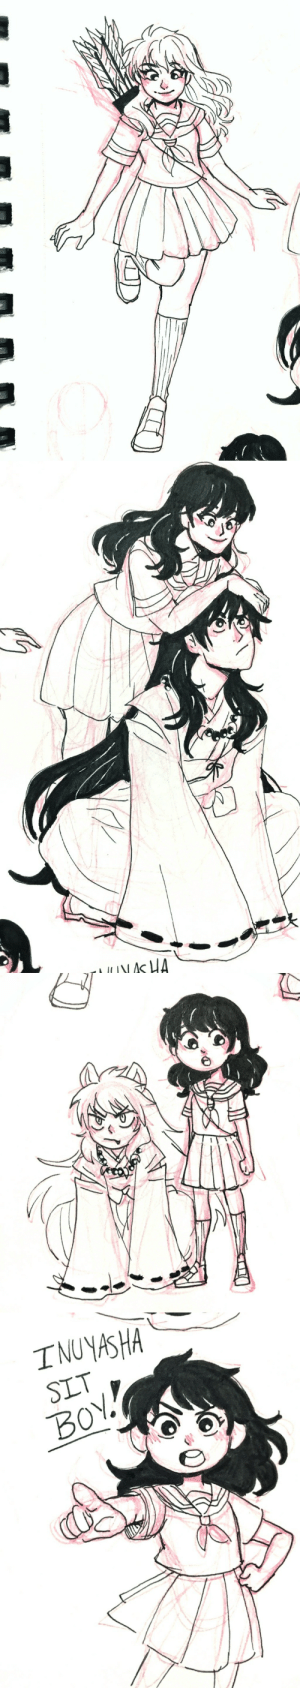 Nas, Target, and Tumblr: NAS HA   INUYASHA  SLT  BOY aaliyah-draws:  Inuyasha and Kagome sketches!